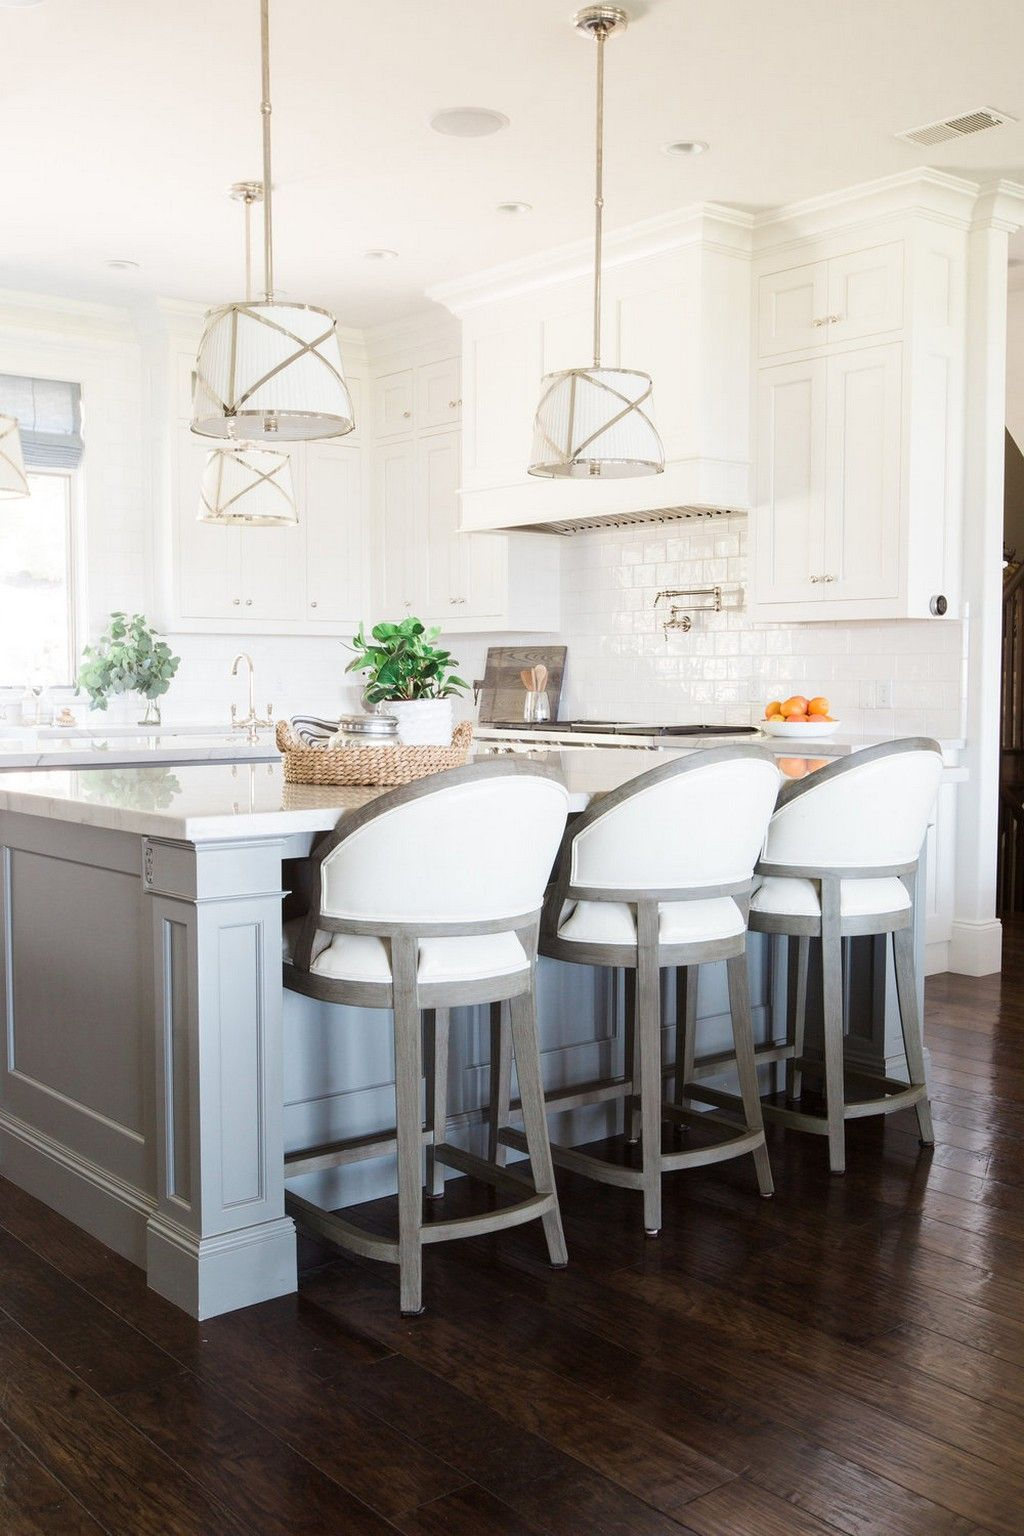 How To Decorate With White Bar Stools  Interior Design  Kitchen Extraordinary Kitchen Design Brands Design Decoration